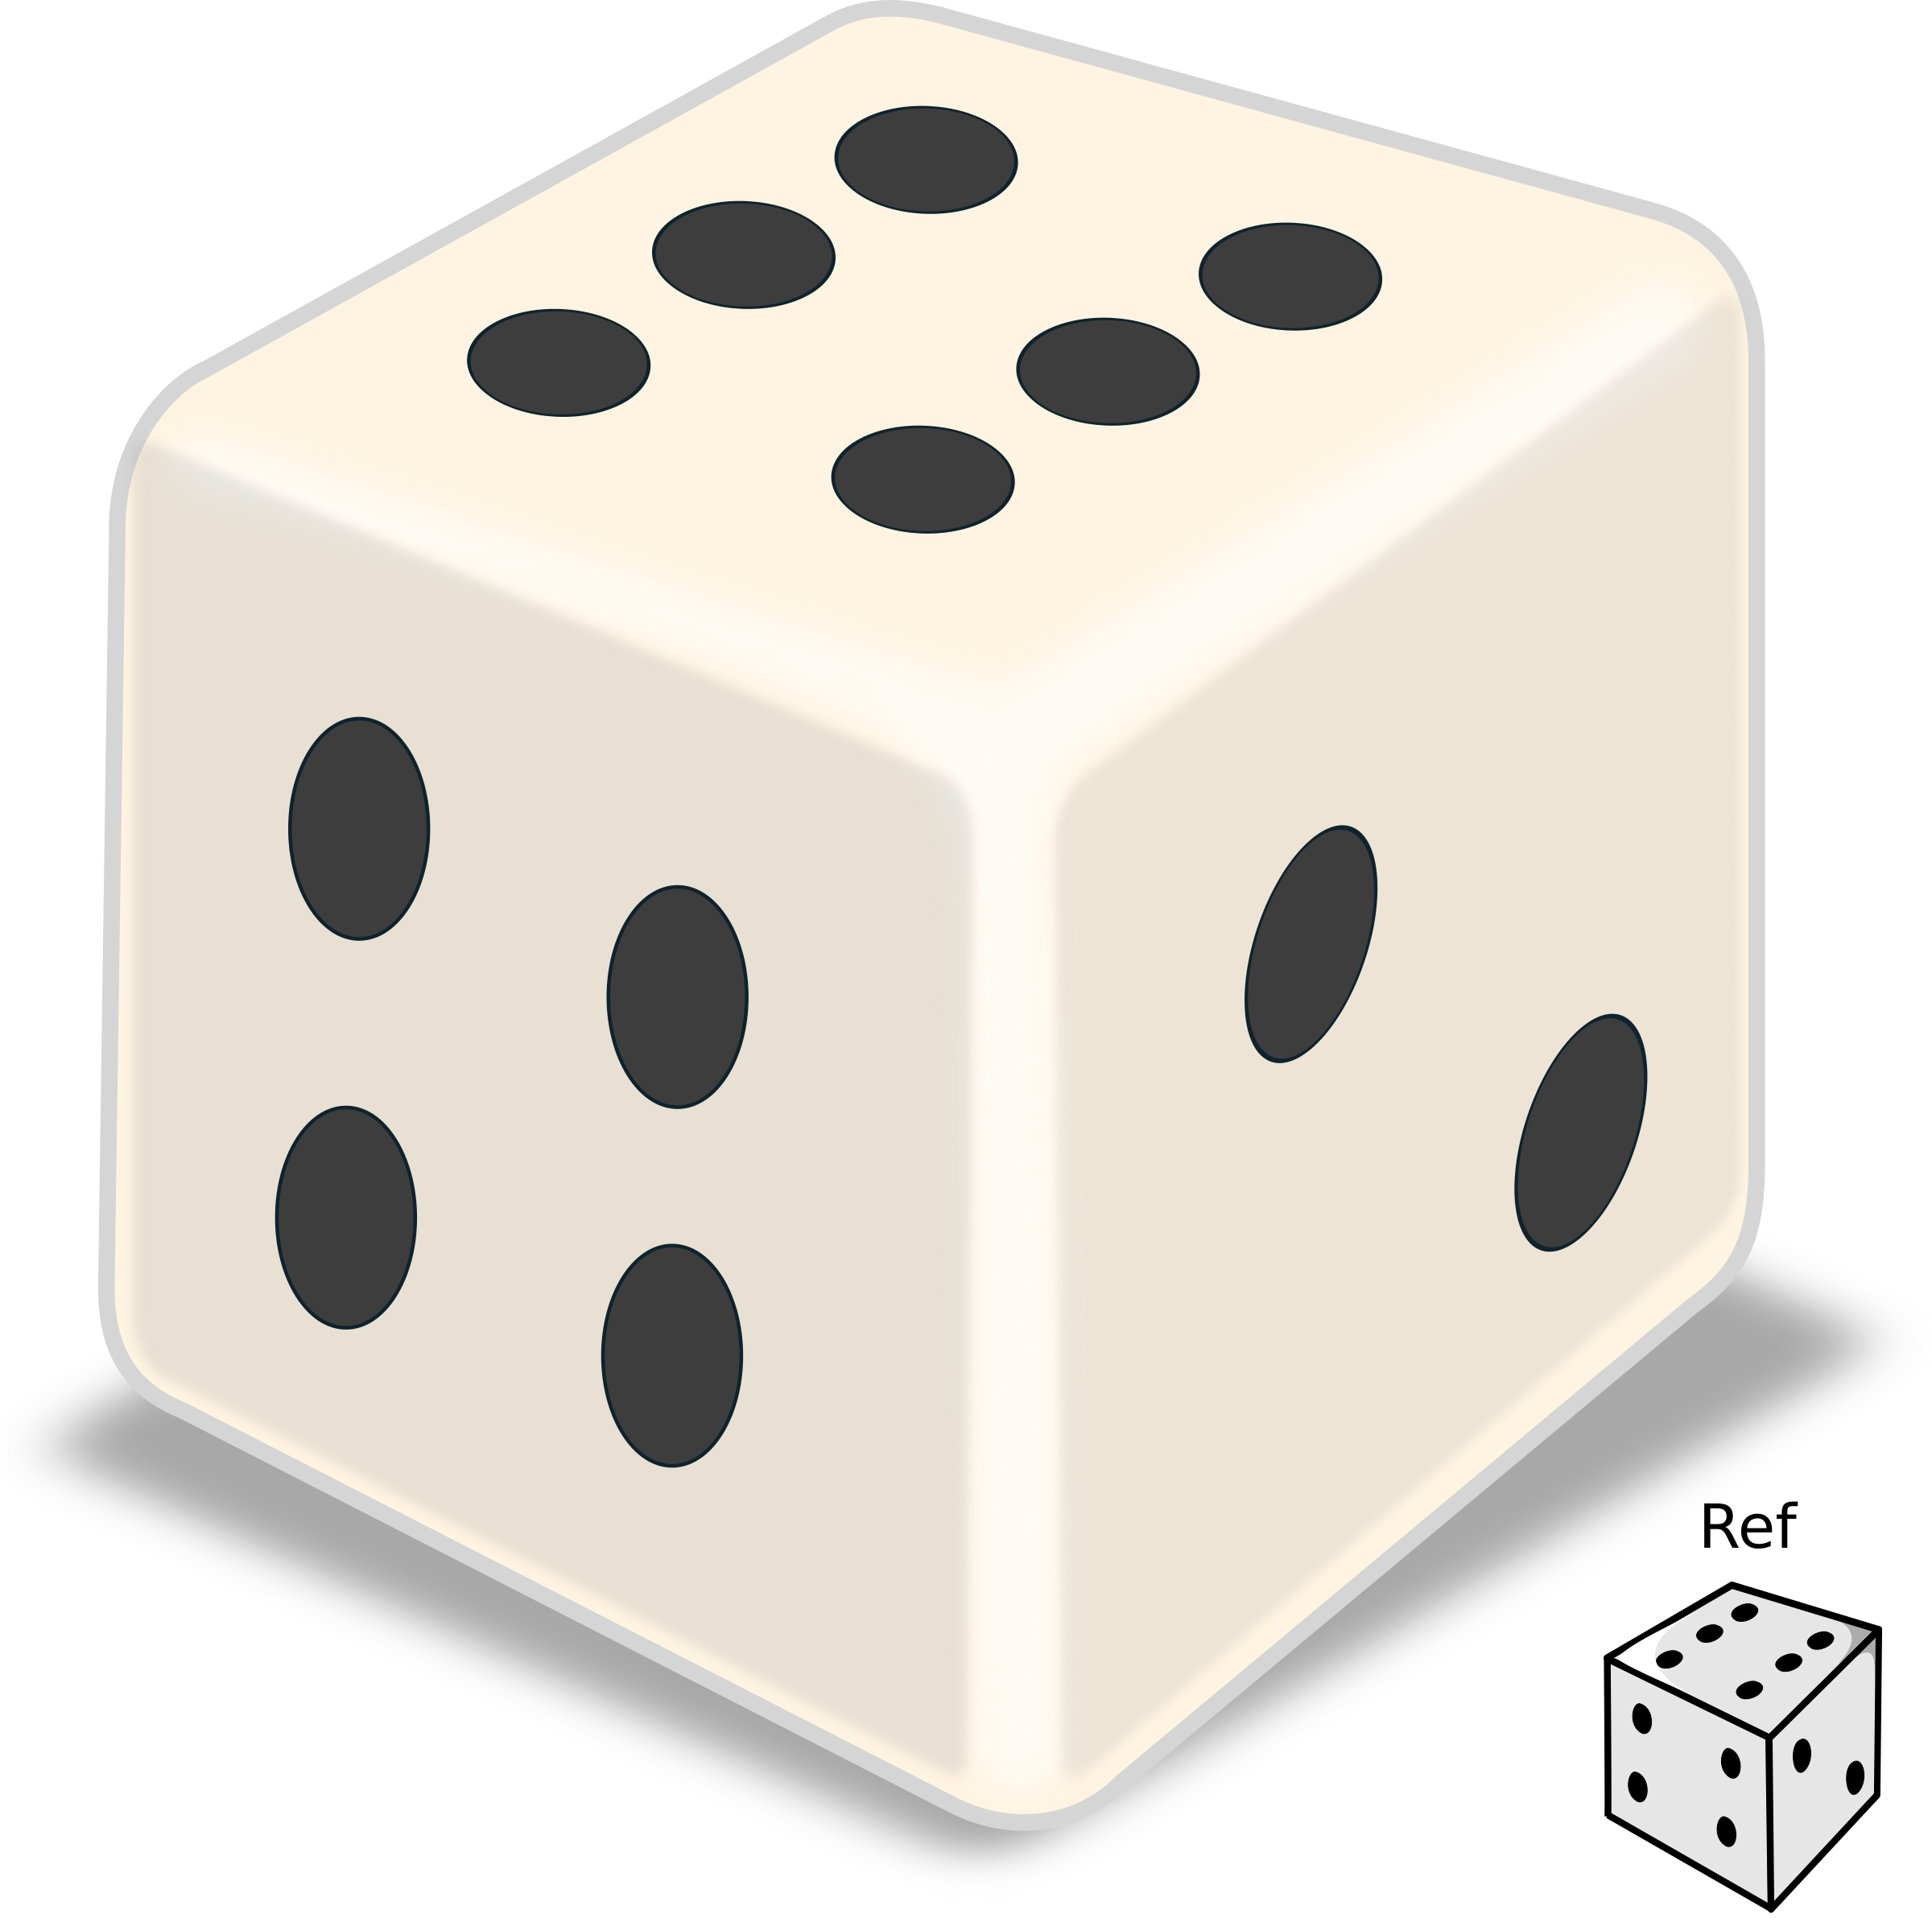 Shiny big image png. Square clipart dice